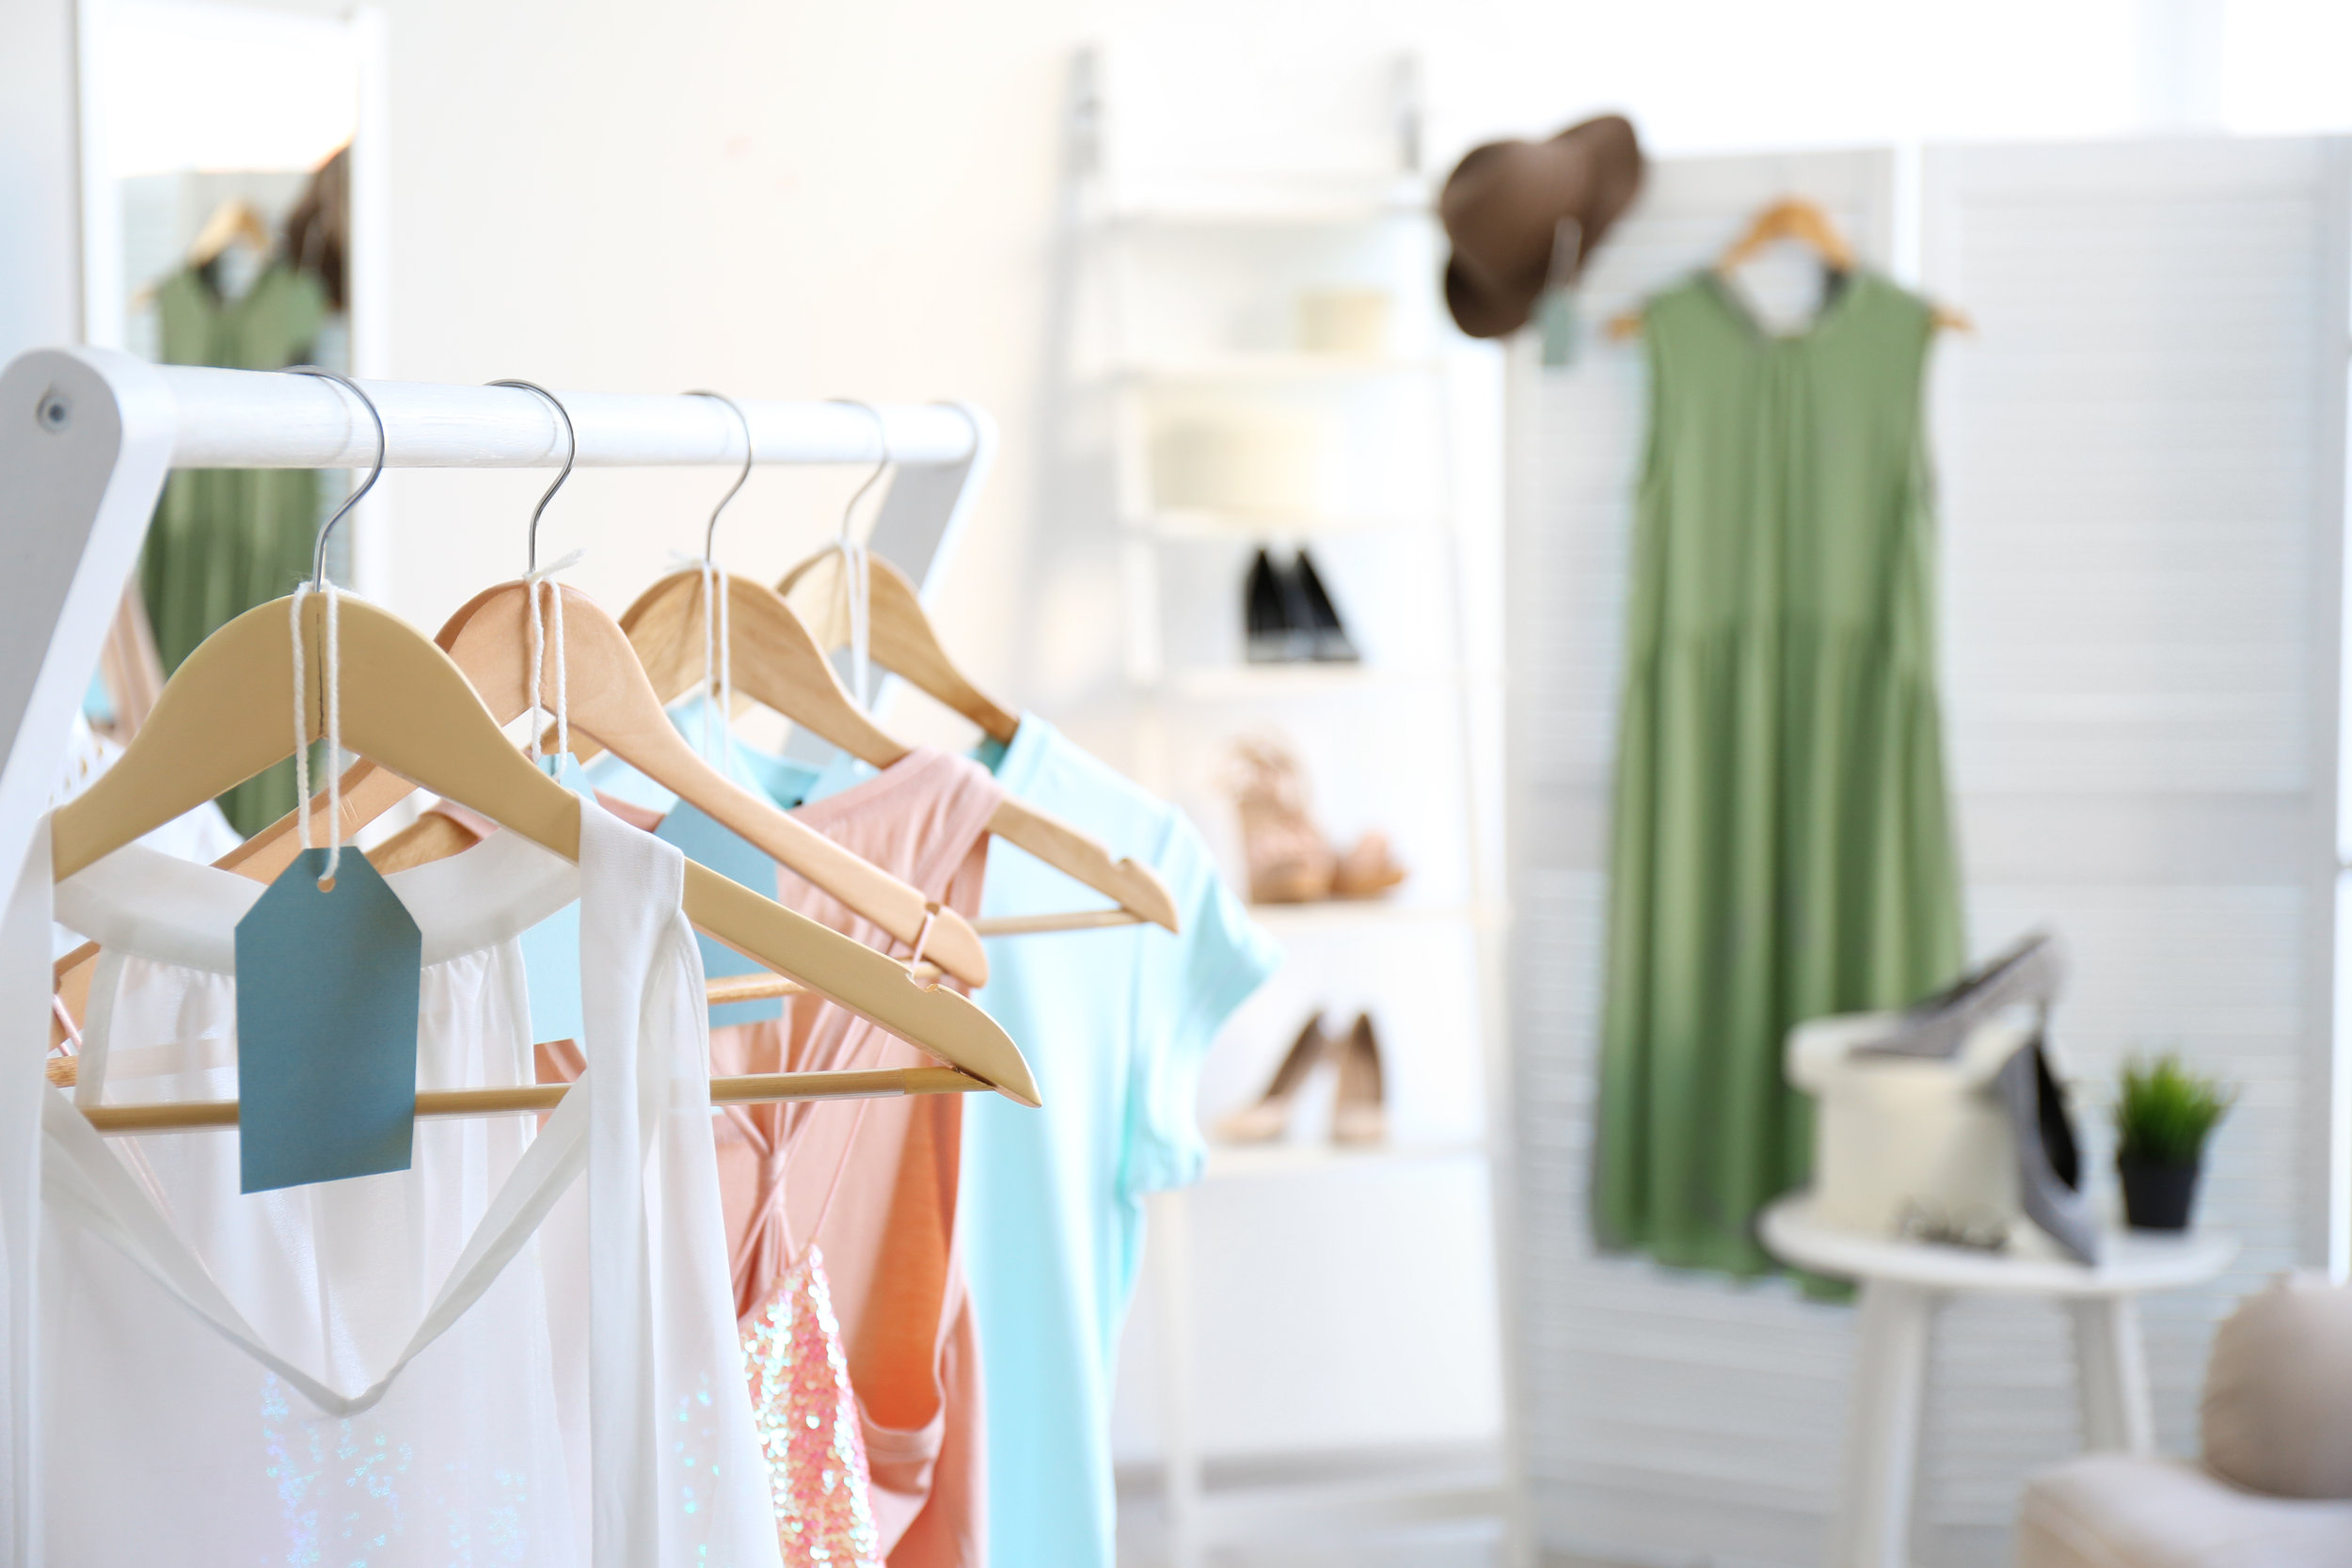 HangRr app, your agent that matches you with the right customer. - One style lookOne hourOne dressing room